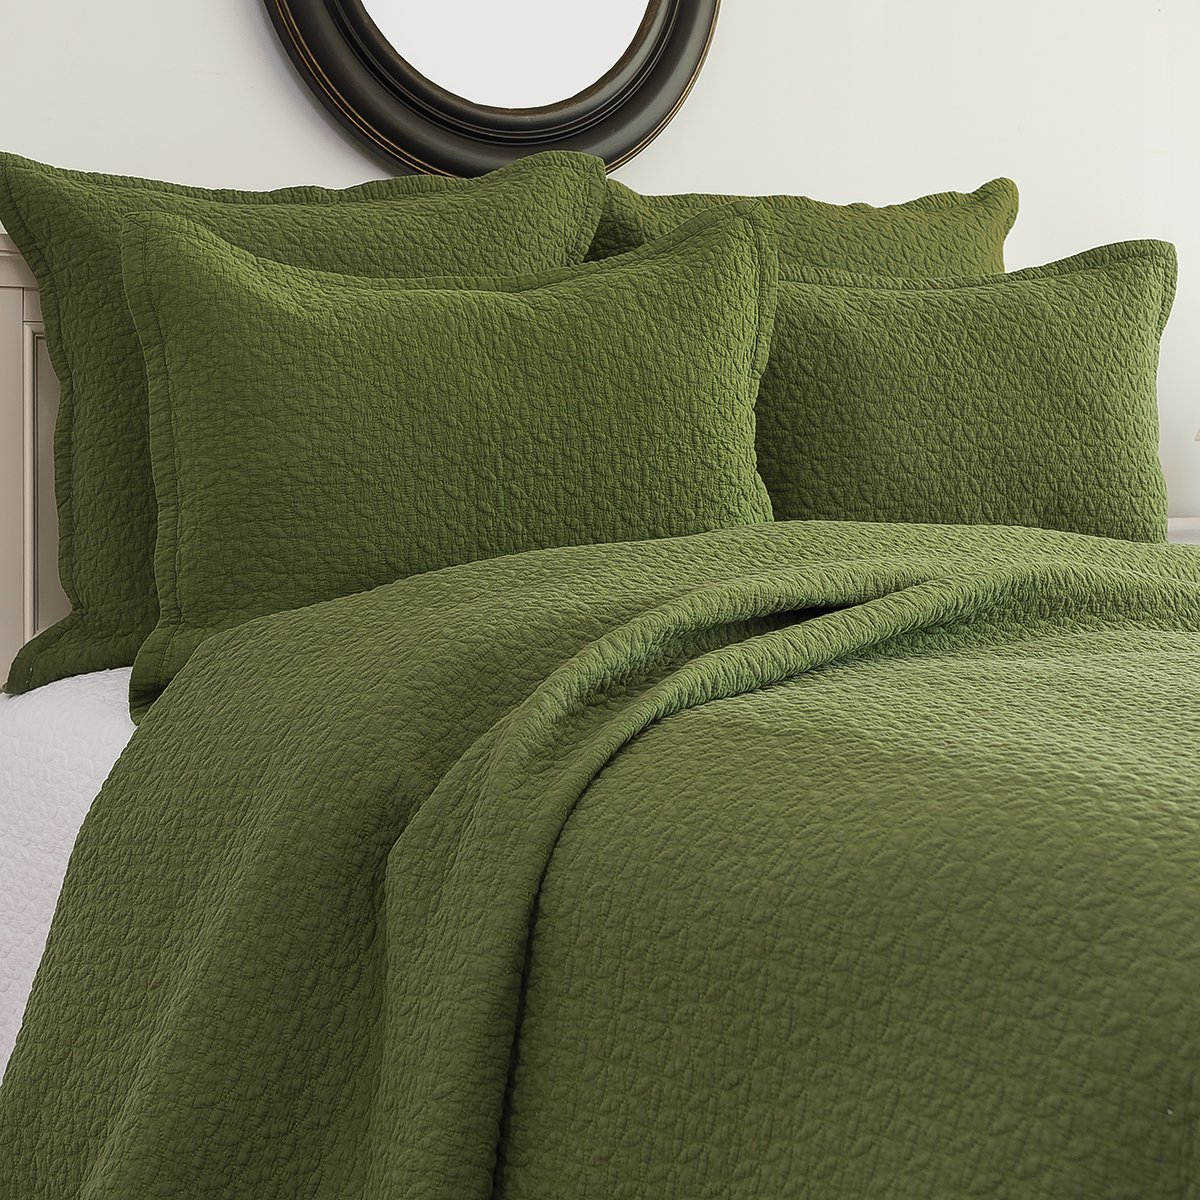 C&F Home Manchester Quilt Set, Full/Queen, Fern, 3 Piece by C&F Home